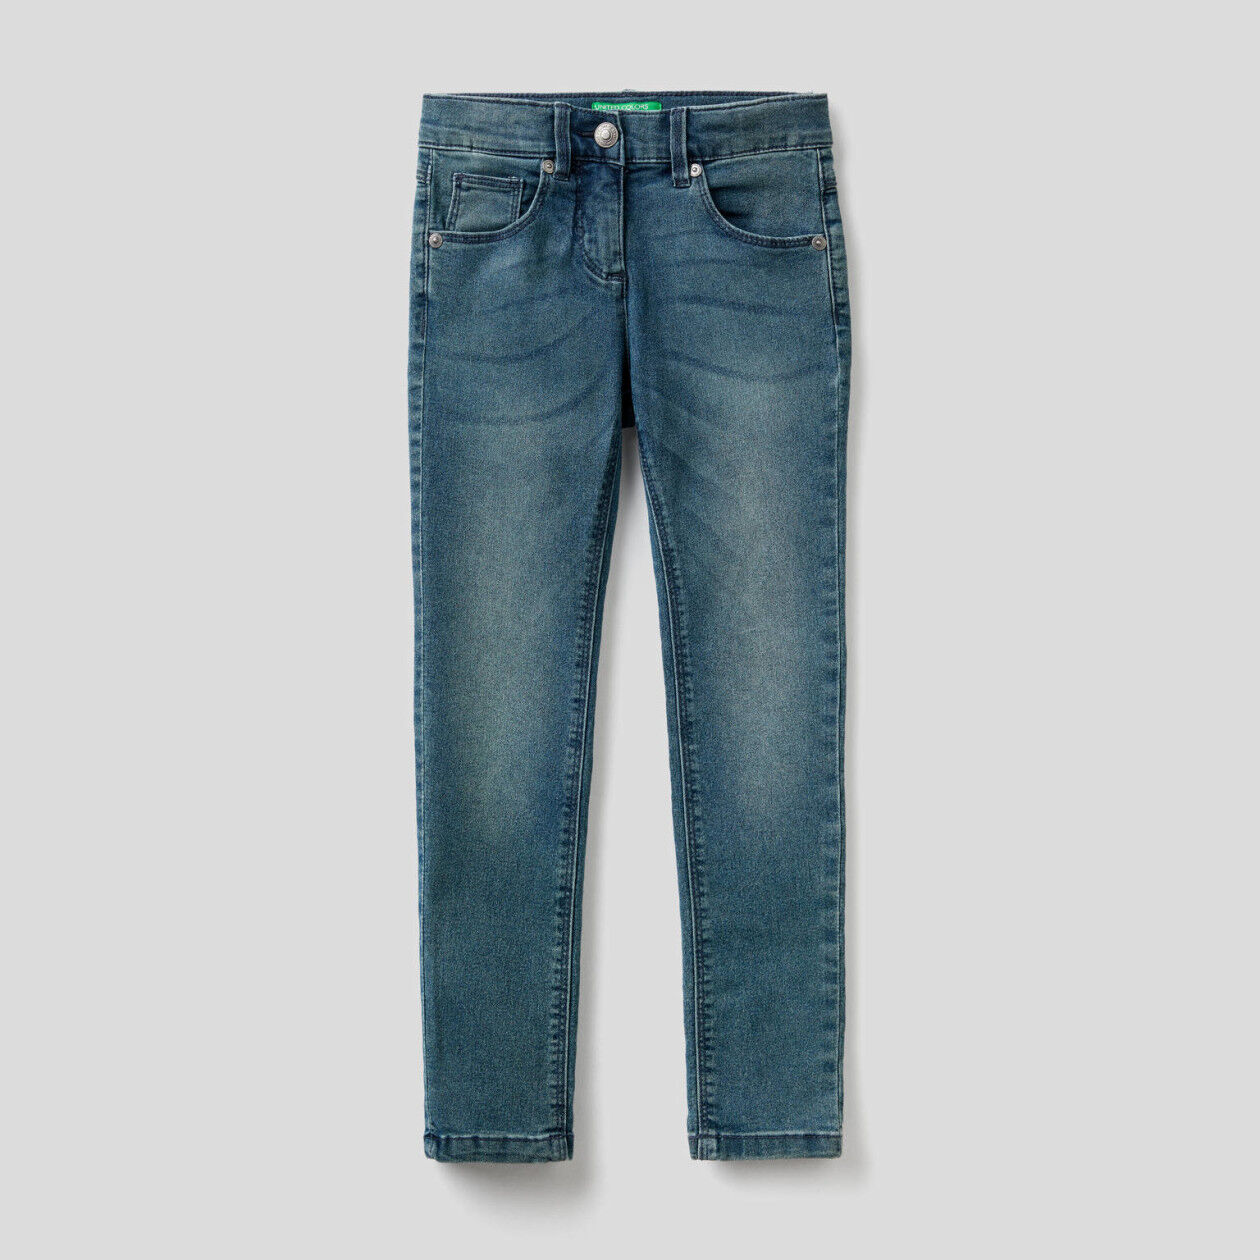 Low-waisted skinny fit jeans